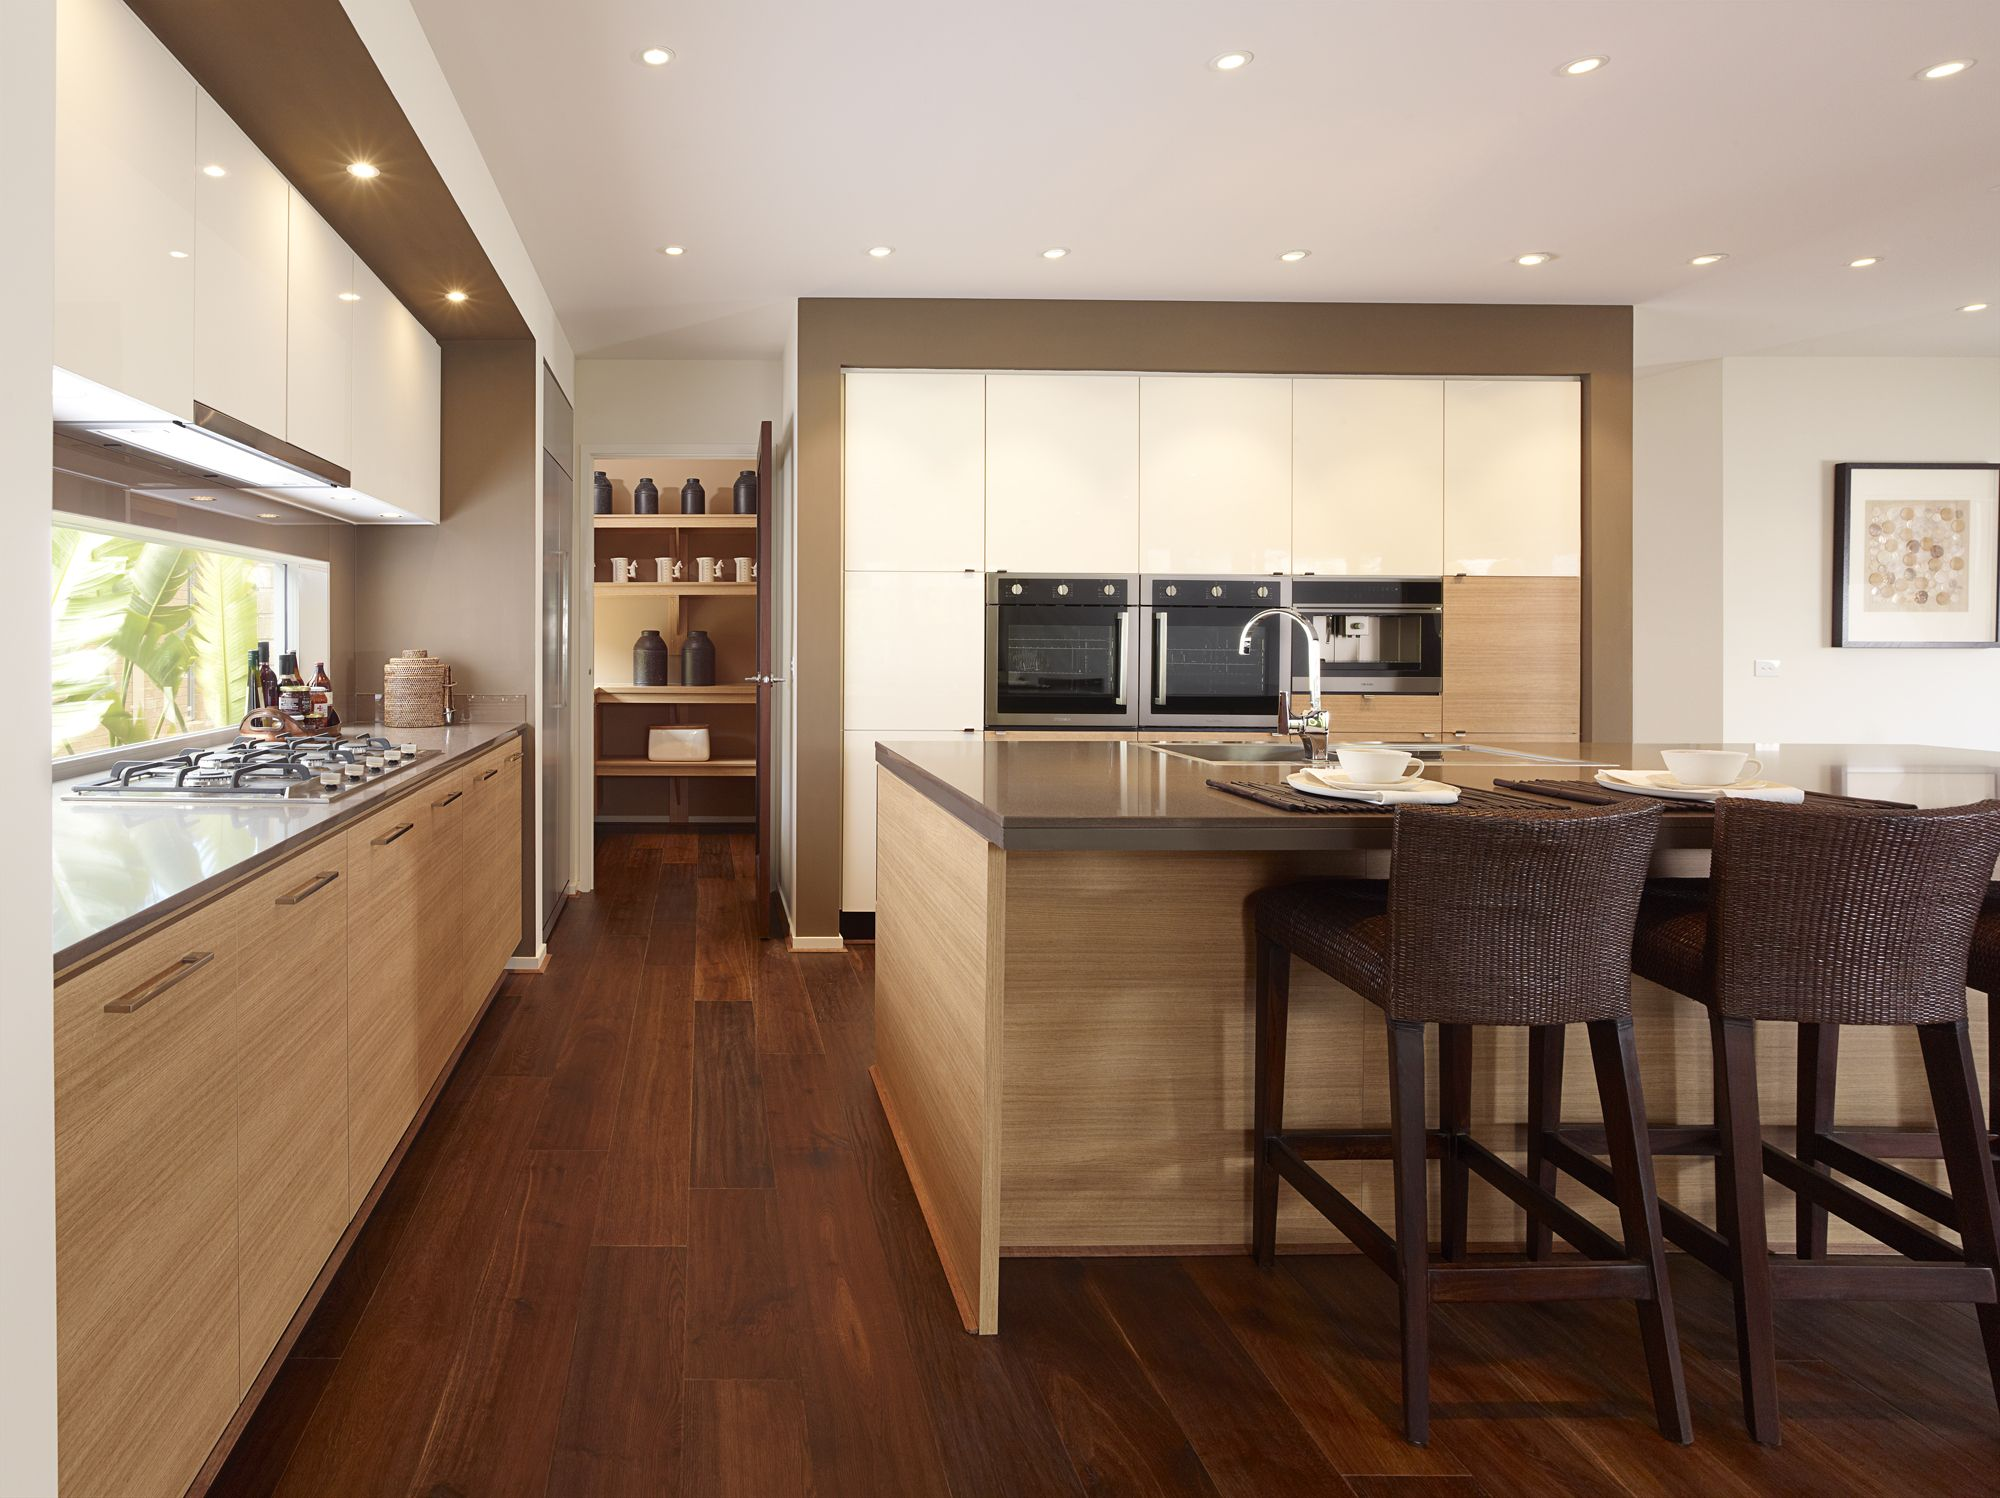 Sahara Kitchen by Henley #Woodleaestate #Henley #land # ...